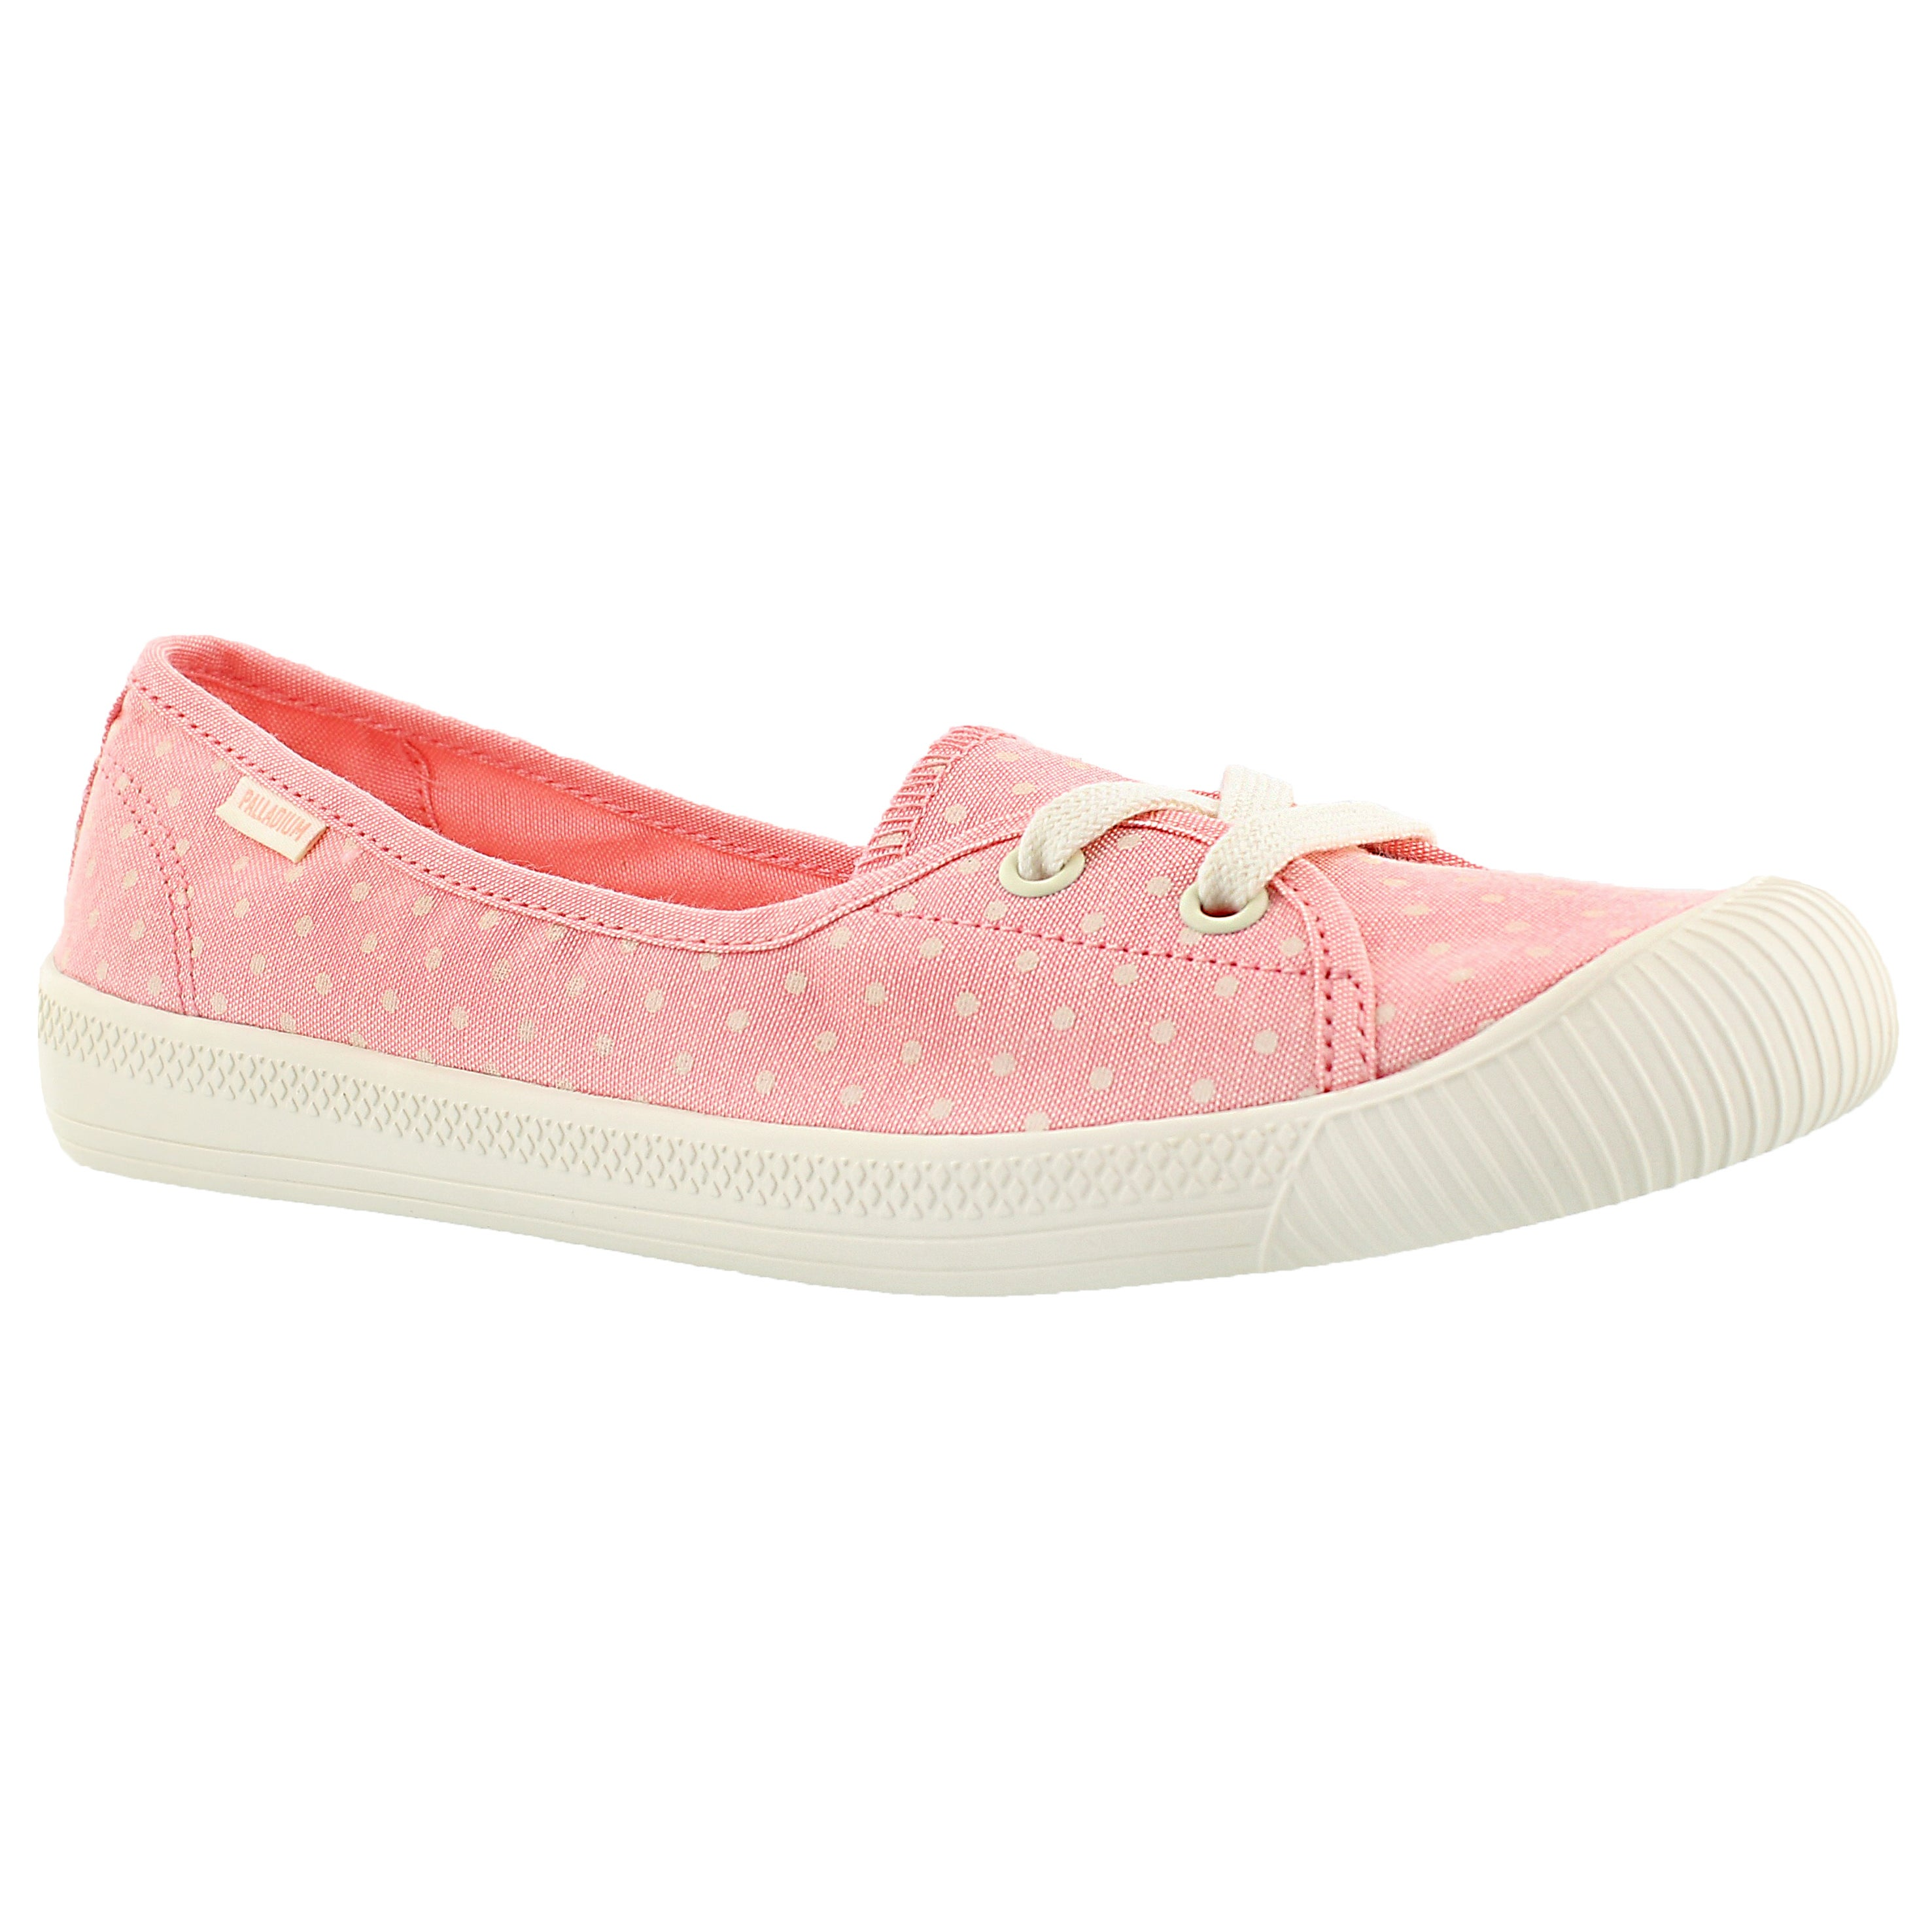 Women's FLEX BALLET peach/white dots sneakers